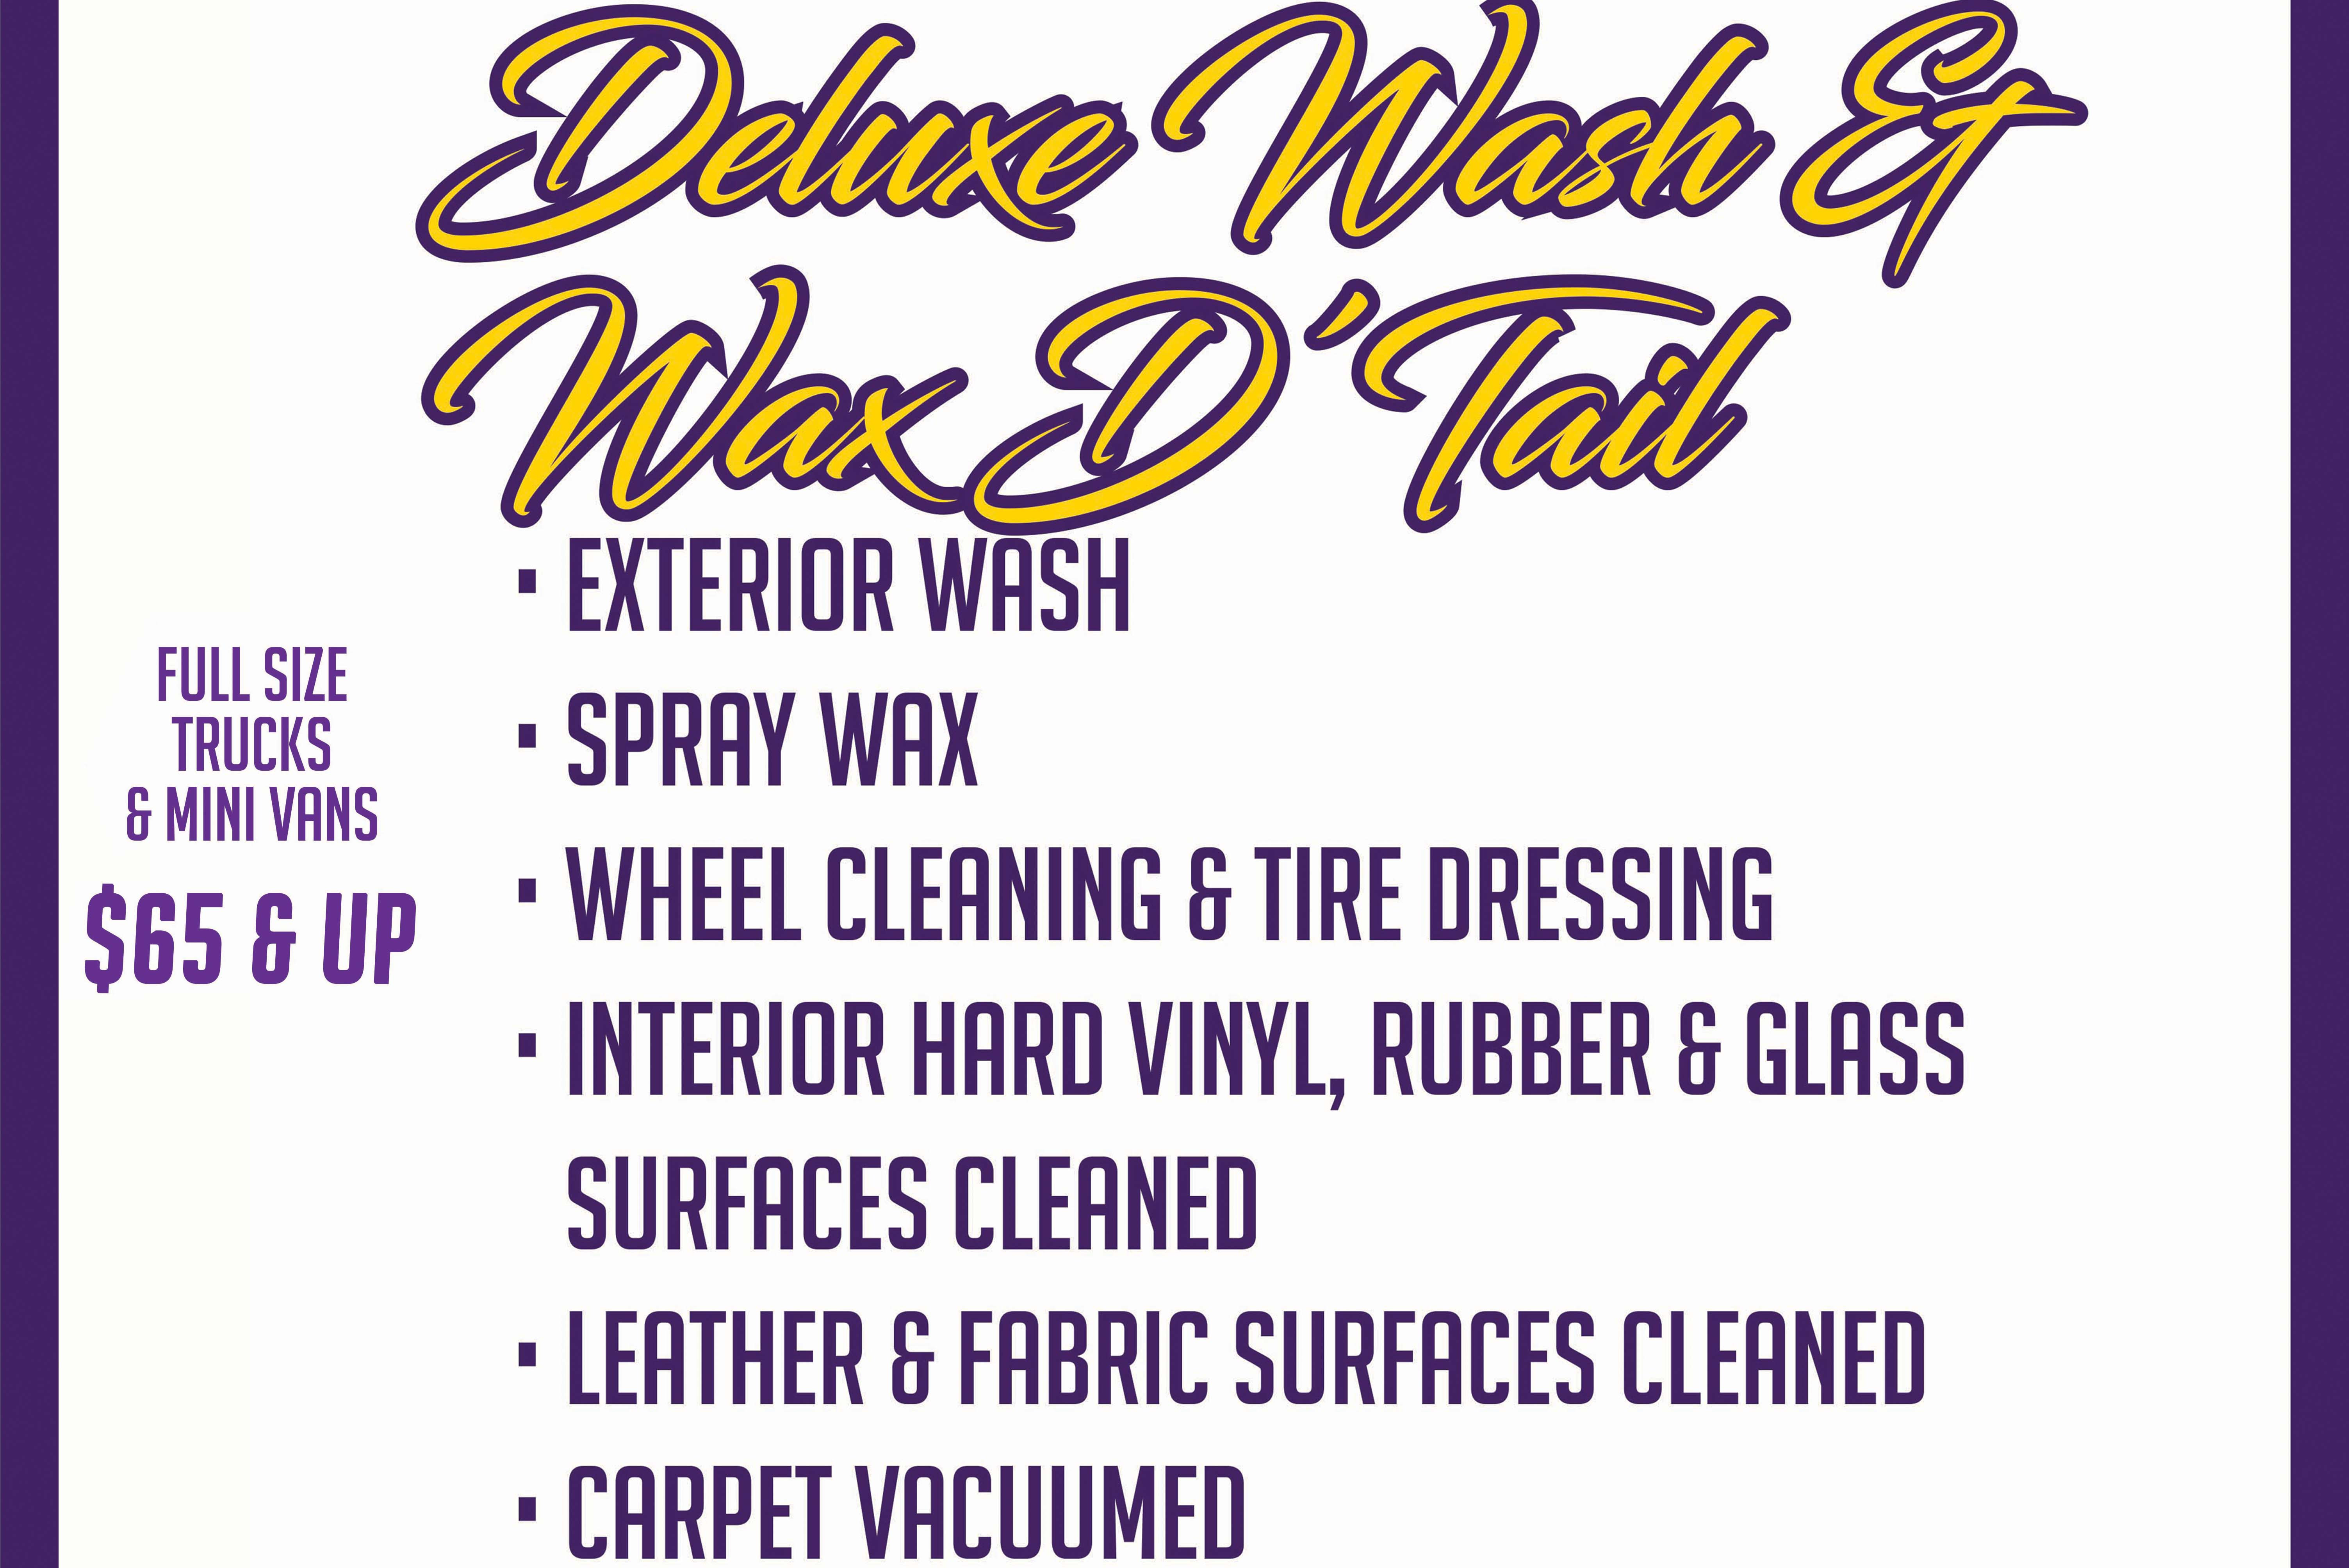 (FULL)Deluxe Wash & Wax D'Tail